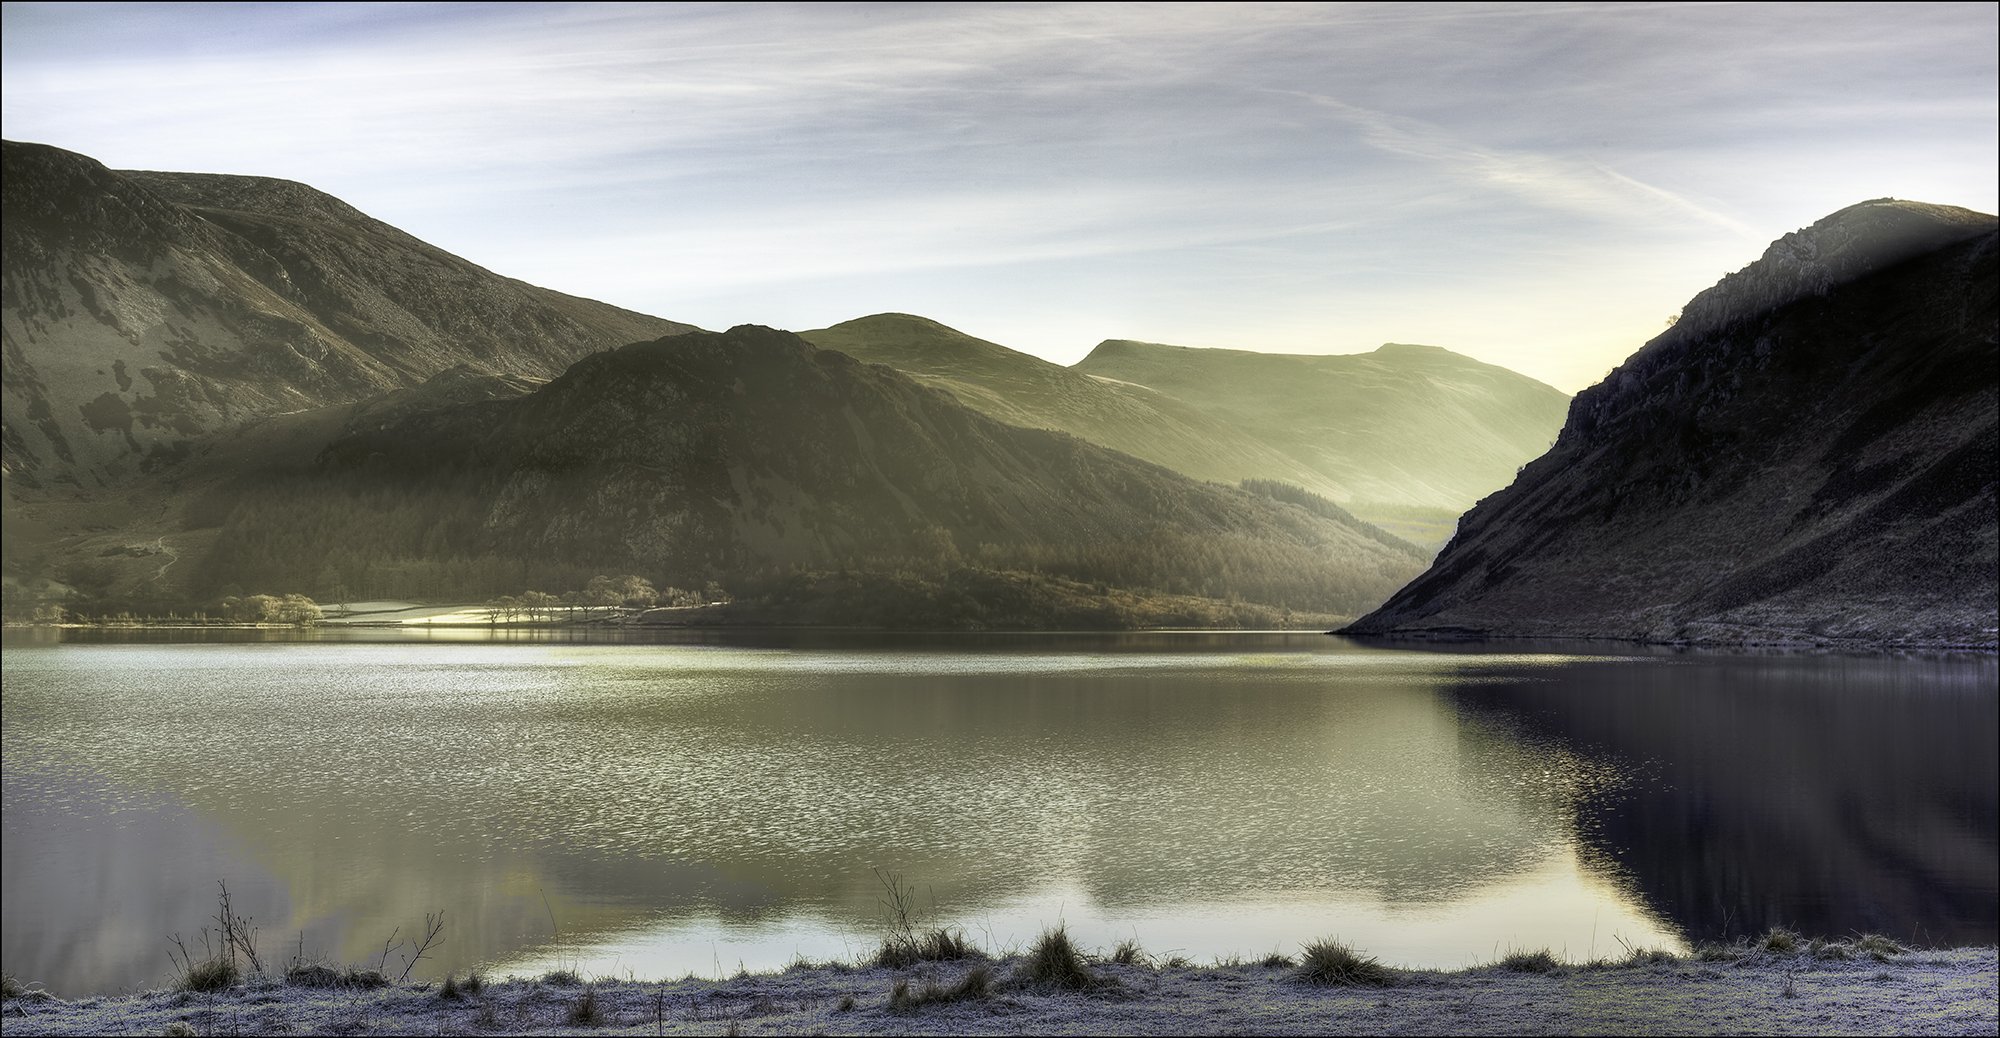 Panorama of Ennerdale Water in the Lake District